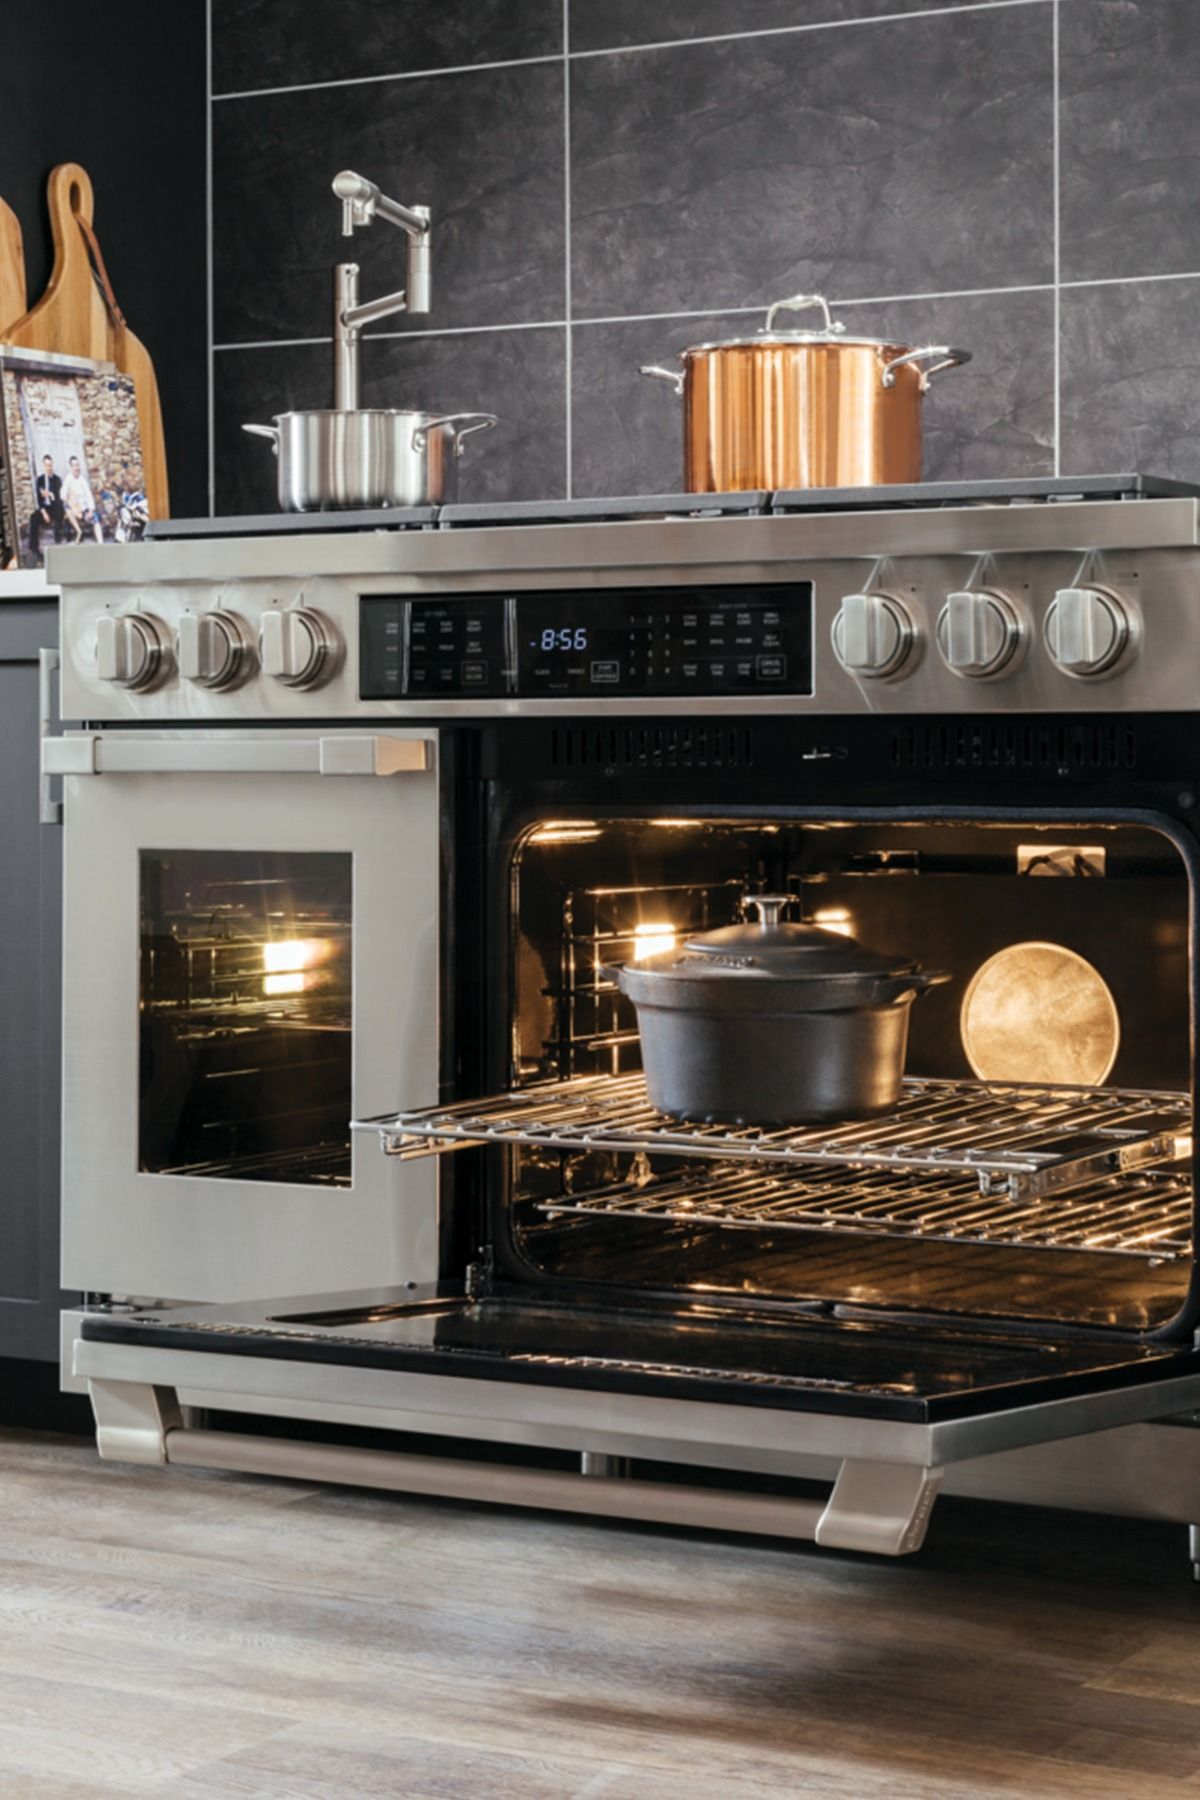 Jump start your dream kitchen. Save up to 6932 on Dacor